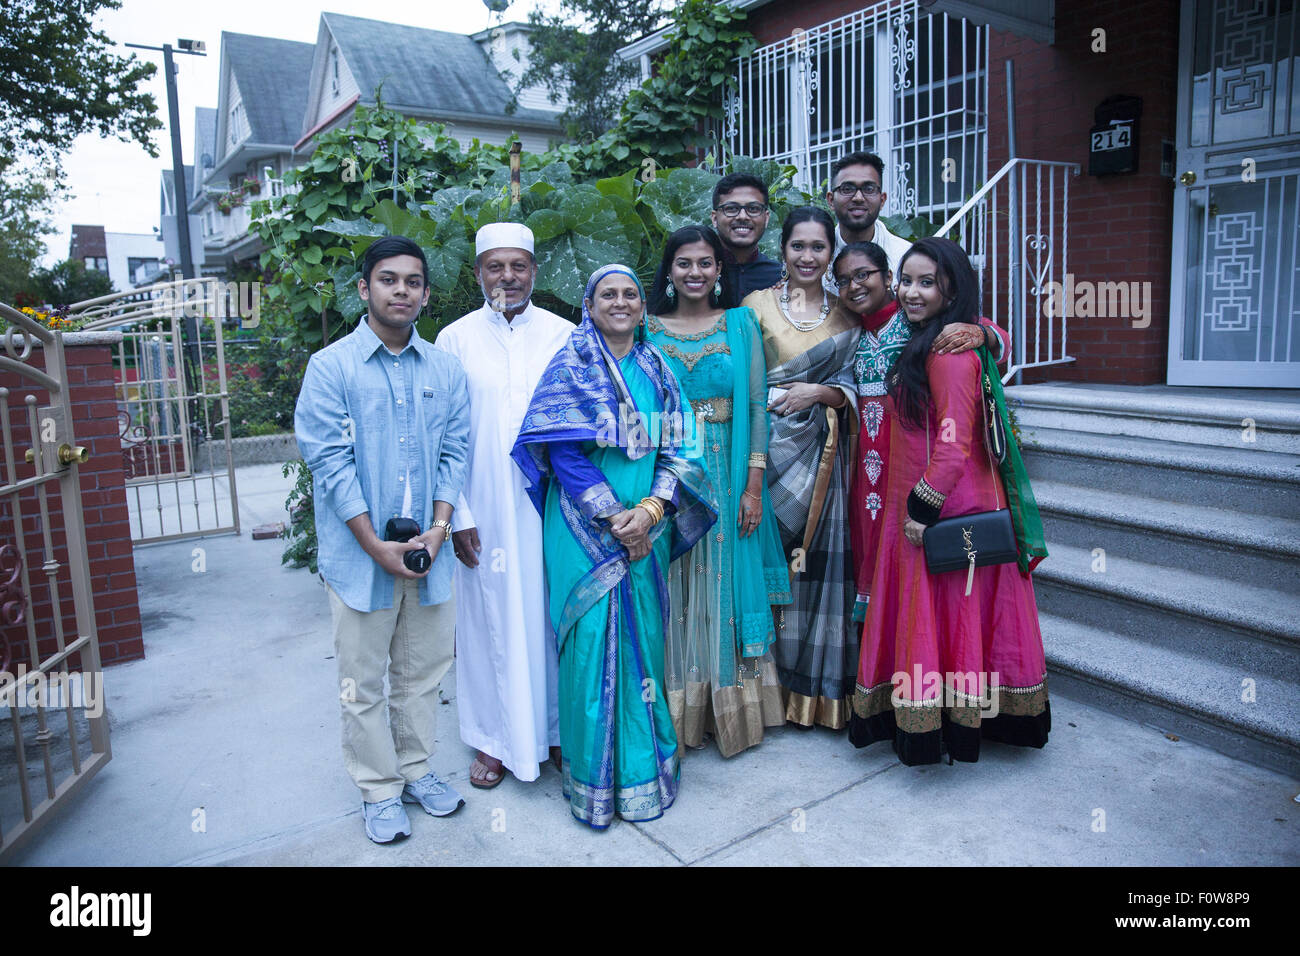 Bangladeshi American family dressed for the Eid holiday celebration after the month of Ramadan. - Stock Image